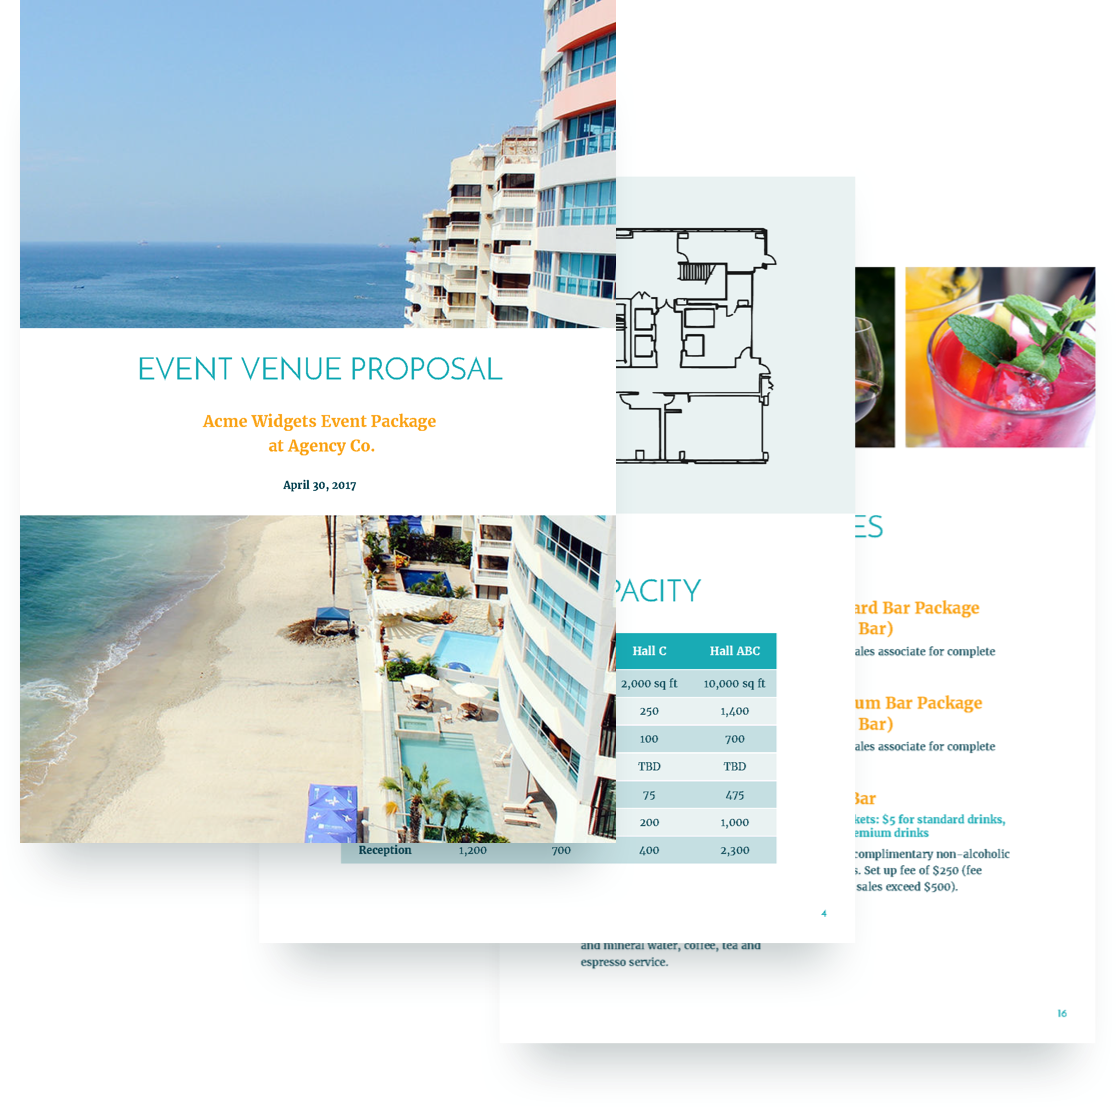 Event Venue Proposal Template Free Sample Hotel  Home Design Idea